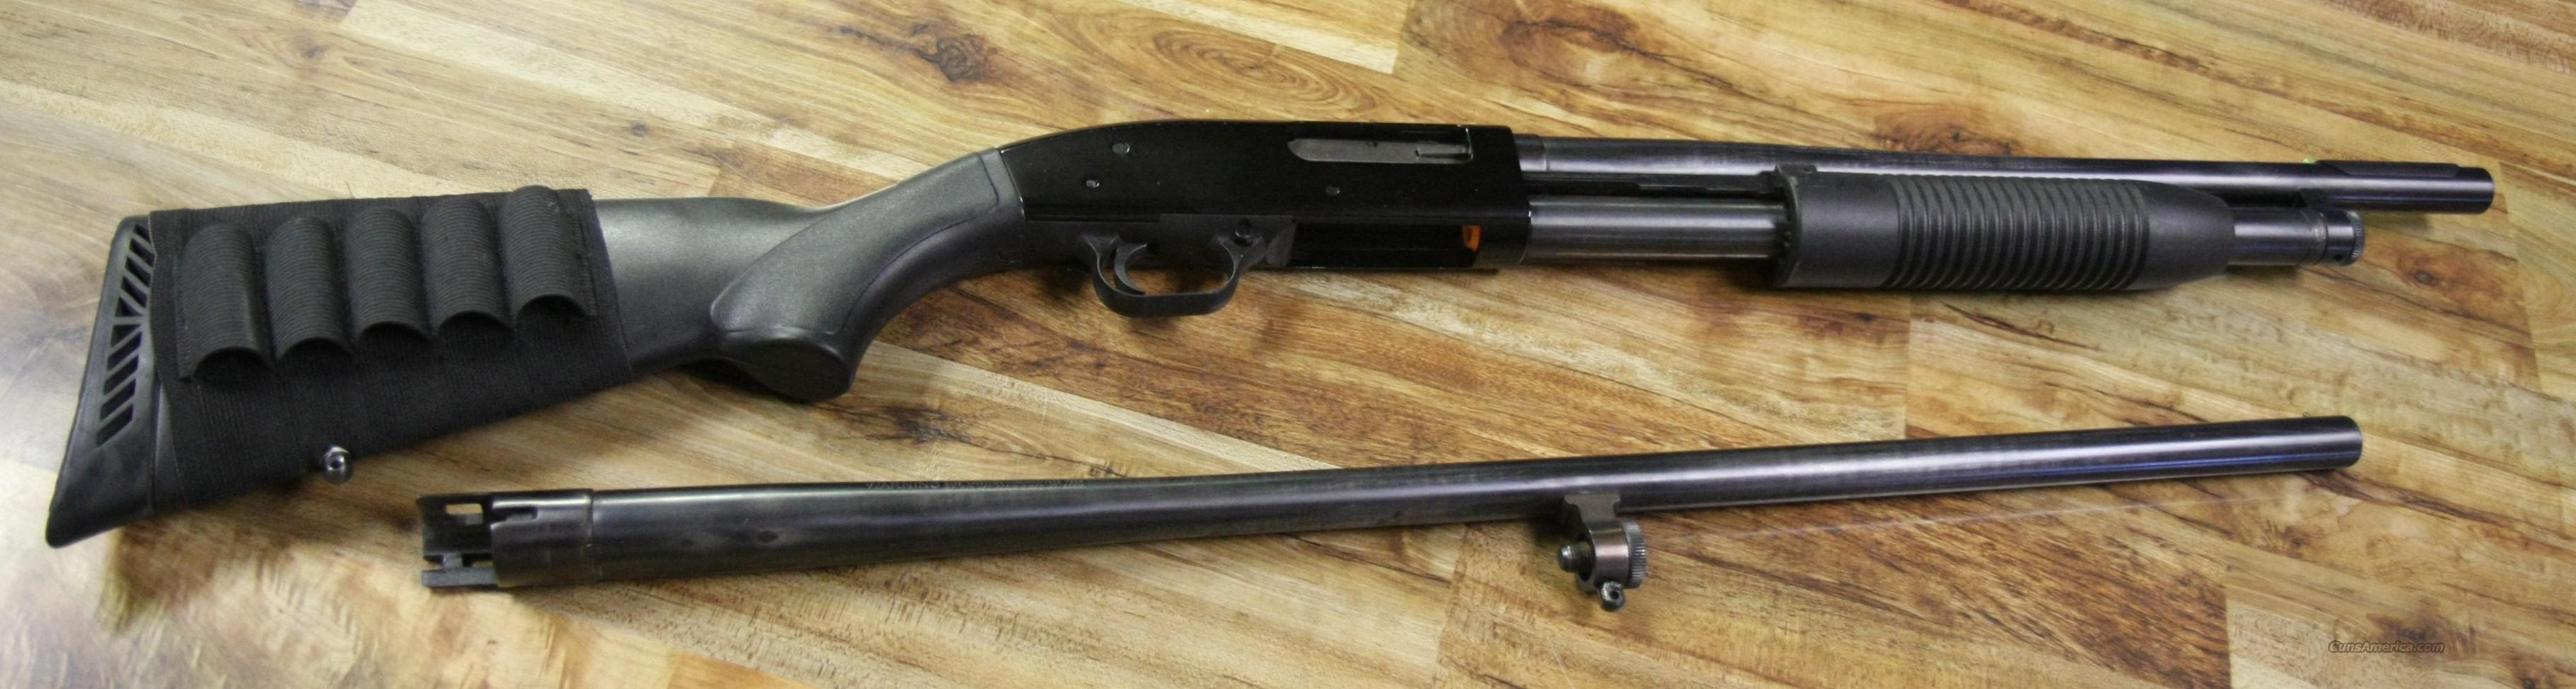 "Mossberg Maverick 88 12 gauge with 18.5"" & 28"" barrels  Guns > Shotguns > Mossberg Shotguns > Pump > Tactical"